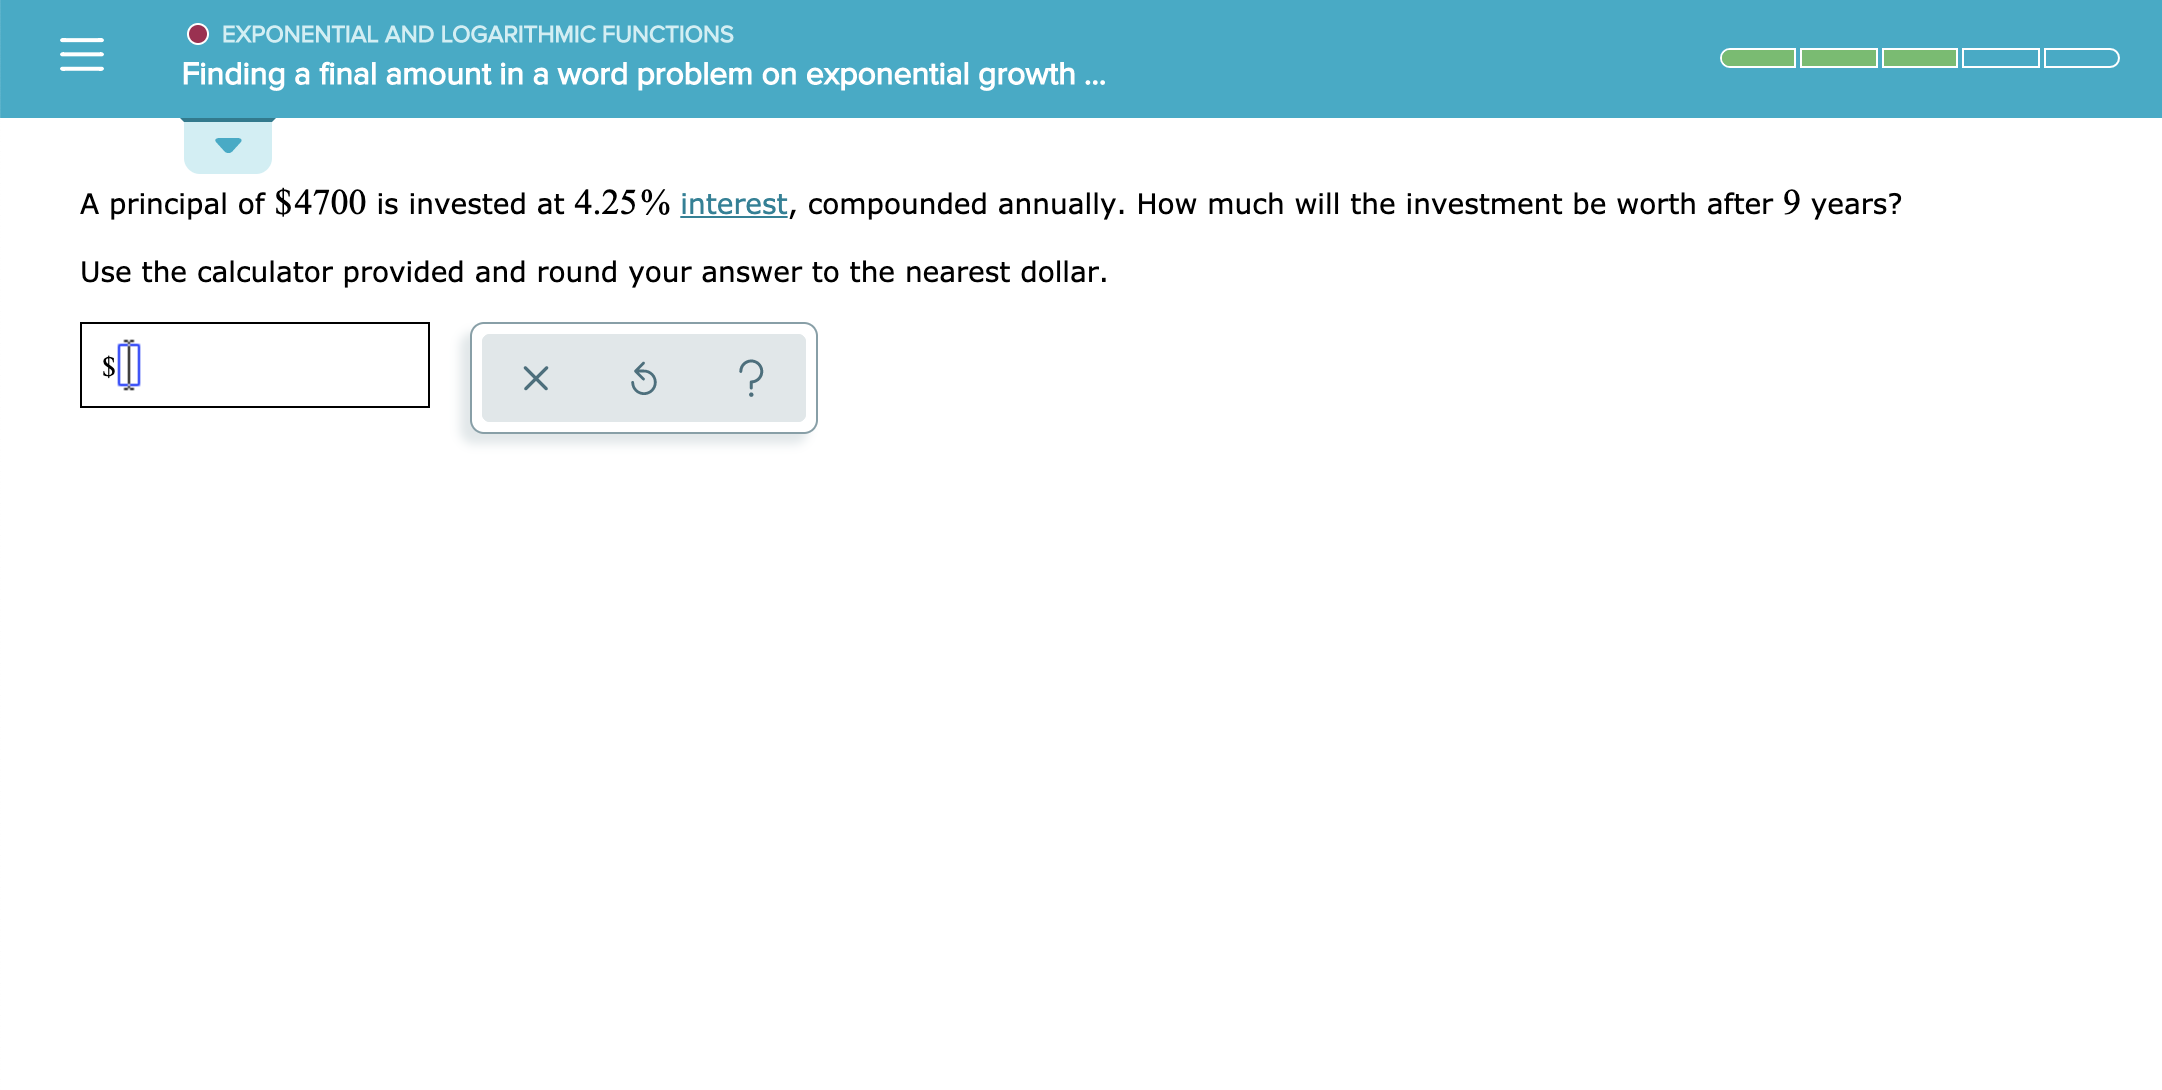 O EXPONENTIAL AND LOGARITH MIC FUNCTIONS Finding a final amount in a word problem on exponential growth.. A principal of $4700 is invested at 4.25% interest, compounded annually. How much will the investment be worth after 9 years? Use the calculator provided and round your answer to the nearest dollar. X